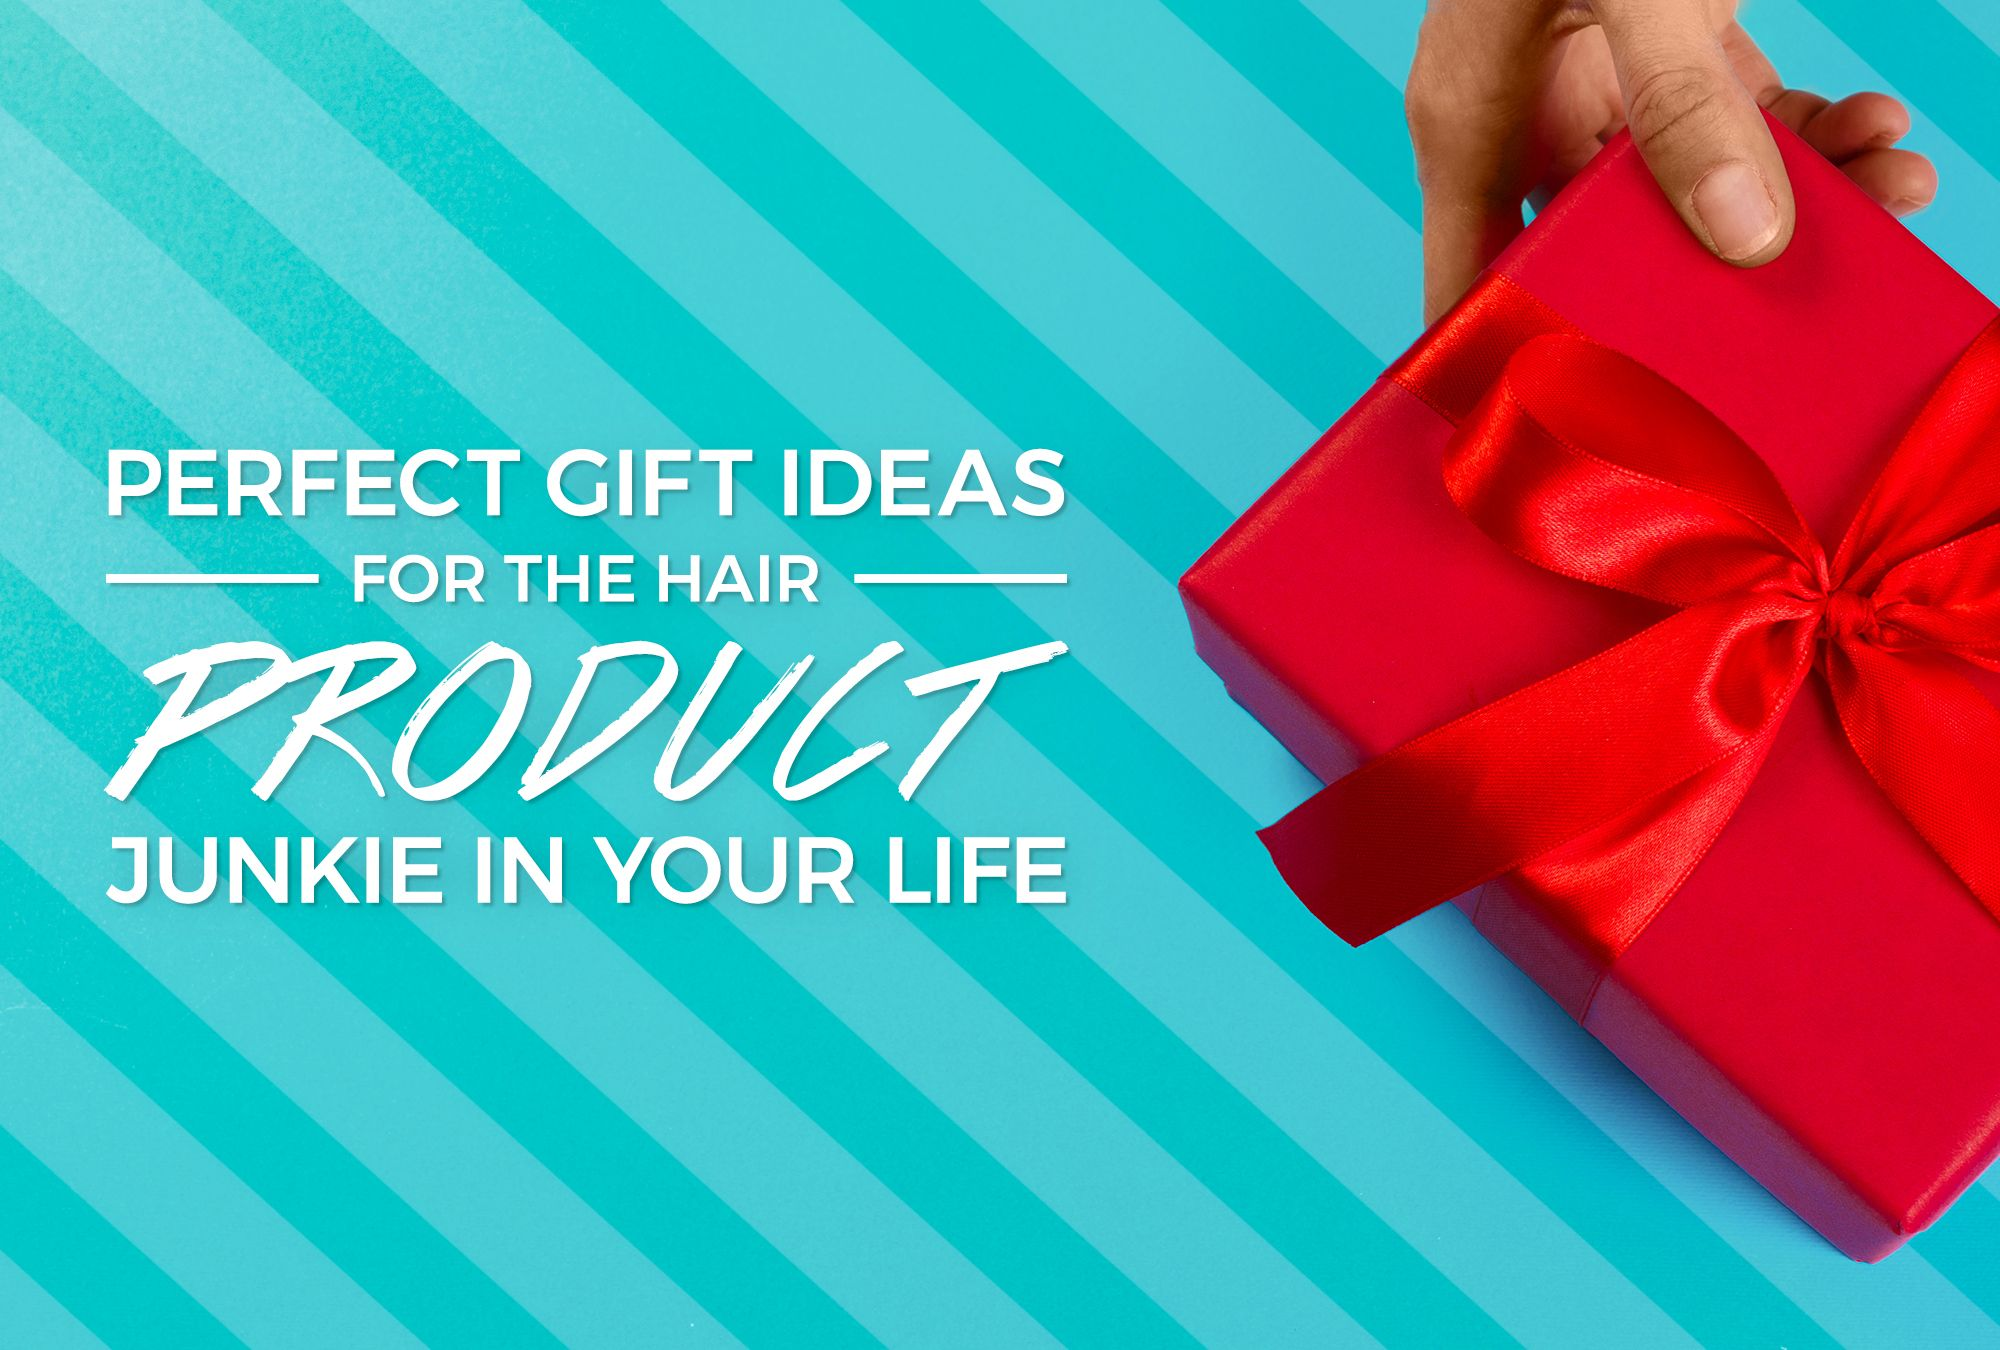 Perfect Gift Ideas For The Hair Product Junkie In Your Life